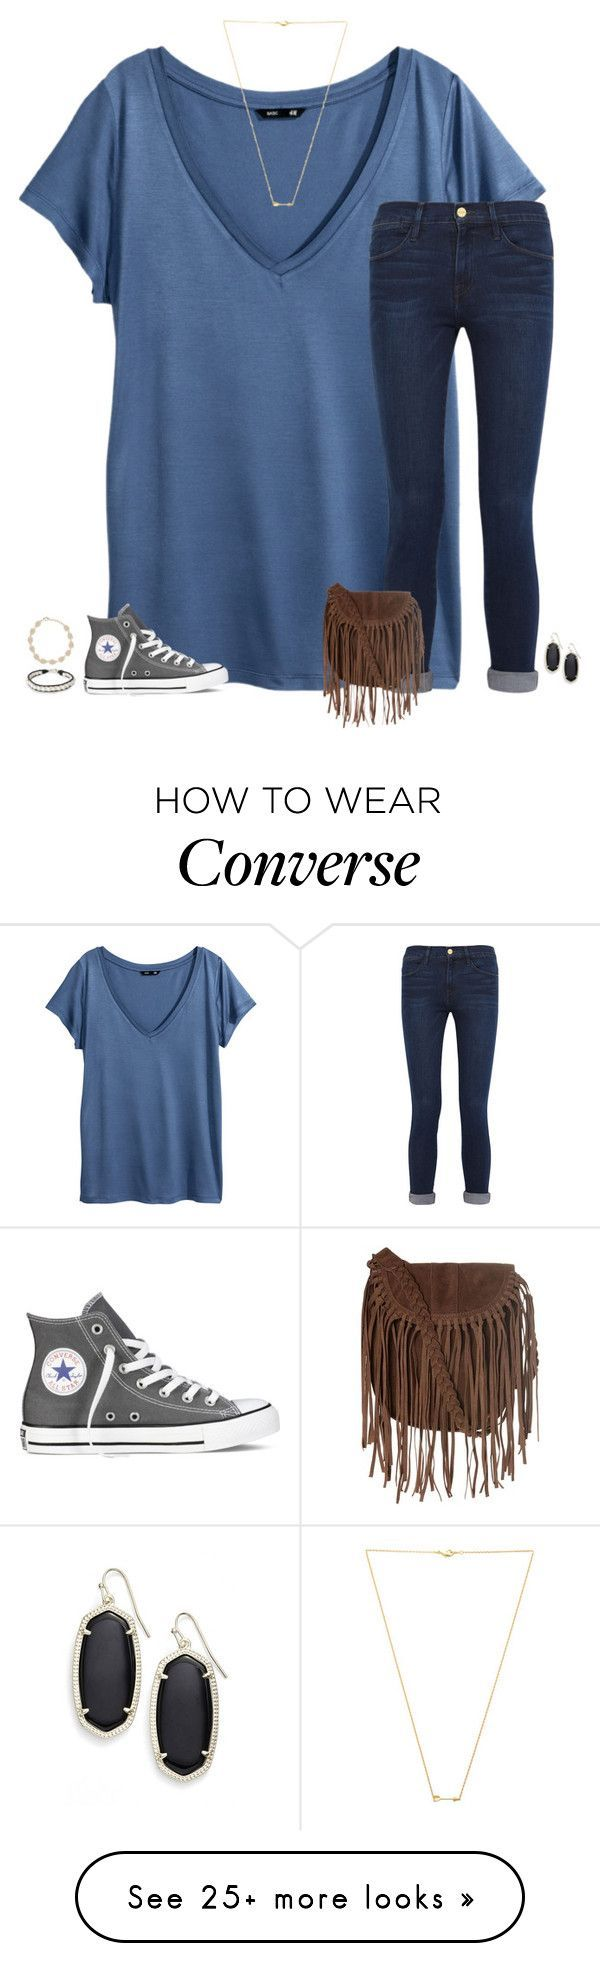 """""""friend set for @sweet-carol"""" by secfashion13 on Polyvore featuring H&M, Frame Denim, Wanderlust + Co, Converse, Kendra Scott, Glamorous and NOVICA"""